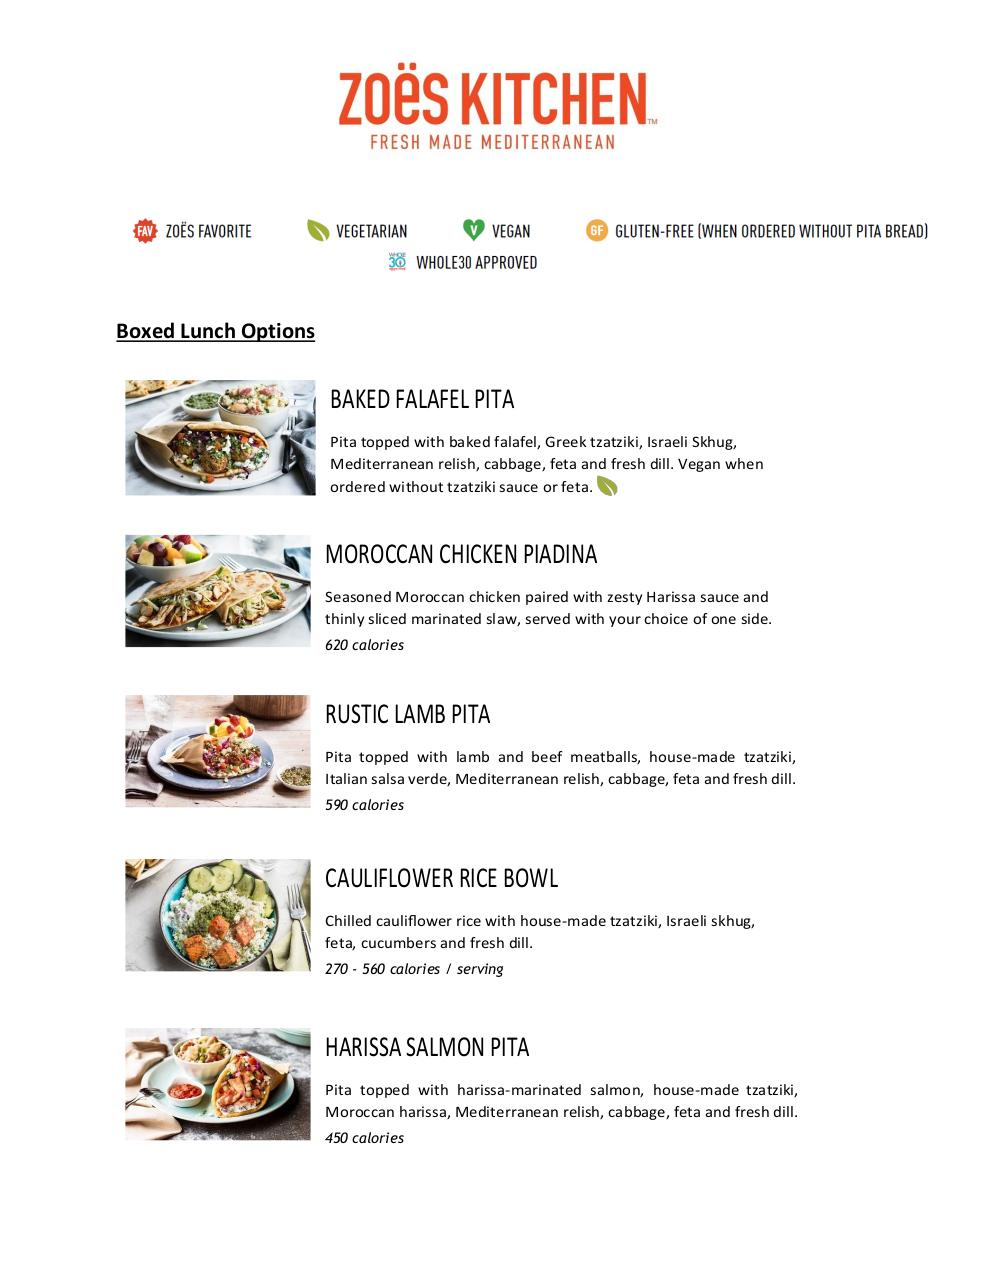 Zoes Kitchen Boxed Lunch Options By Holly Mccauley Pdf